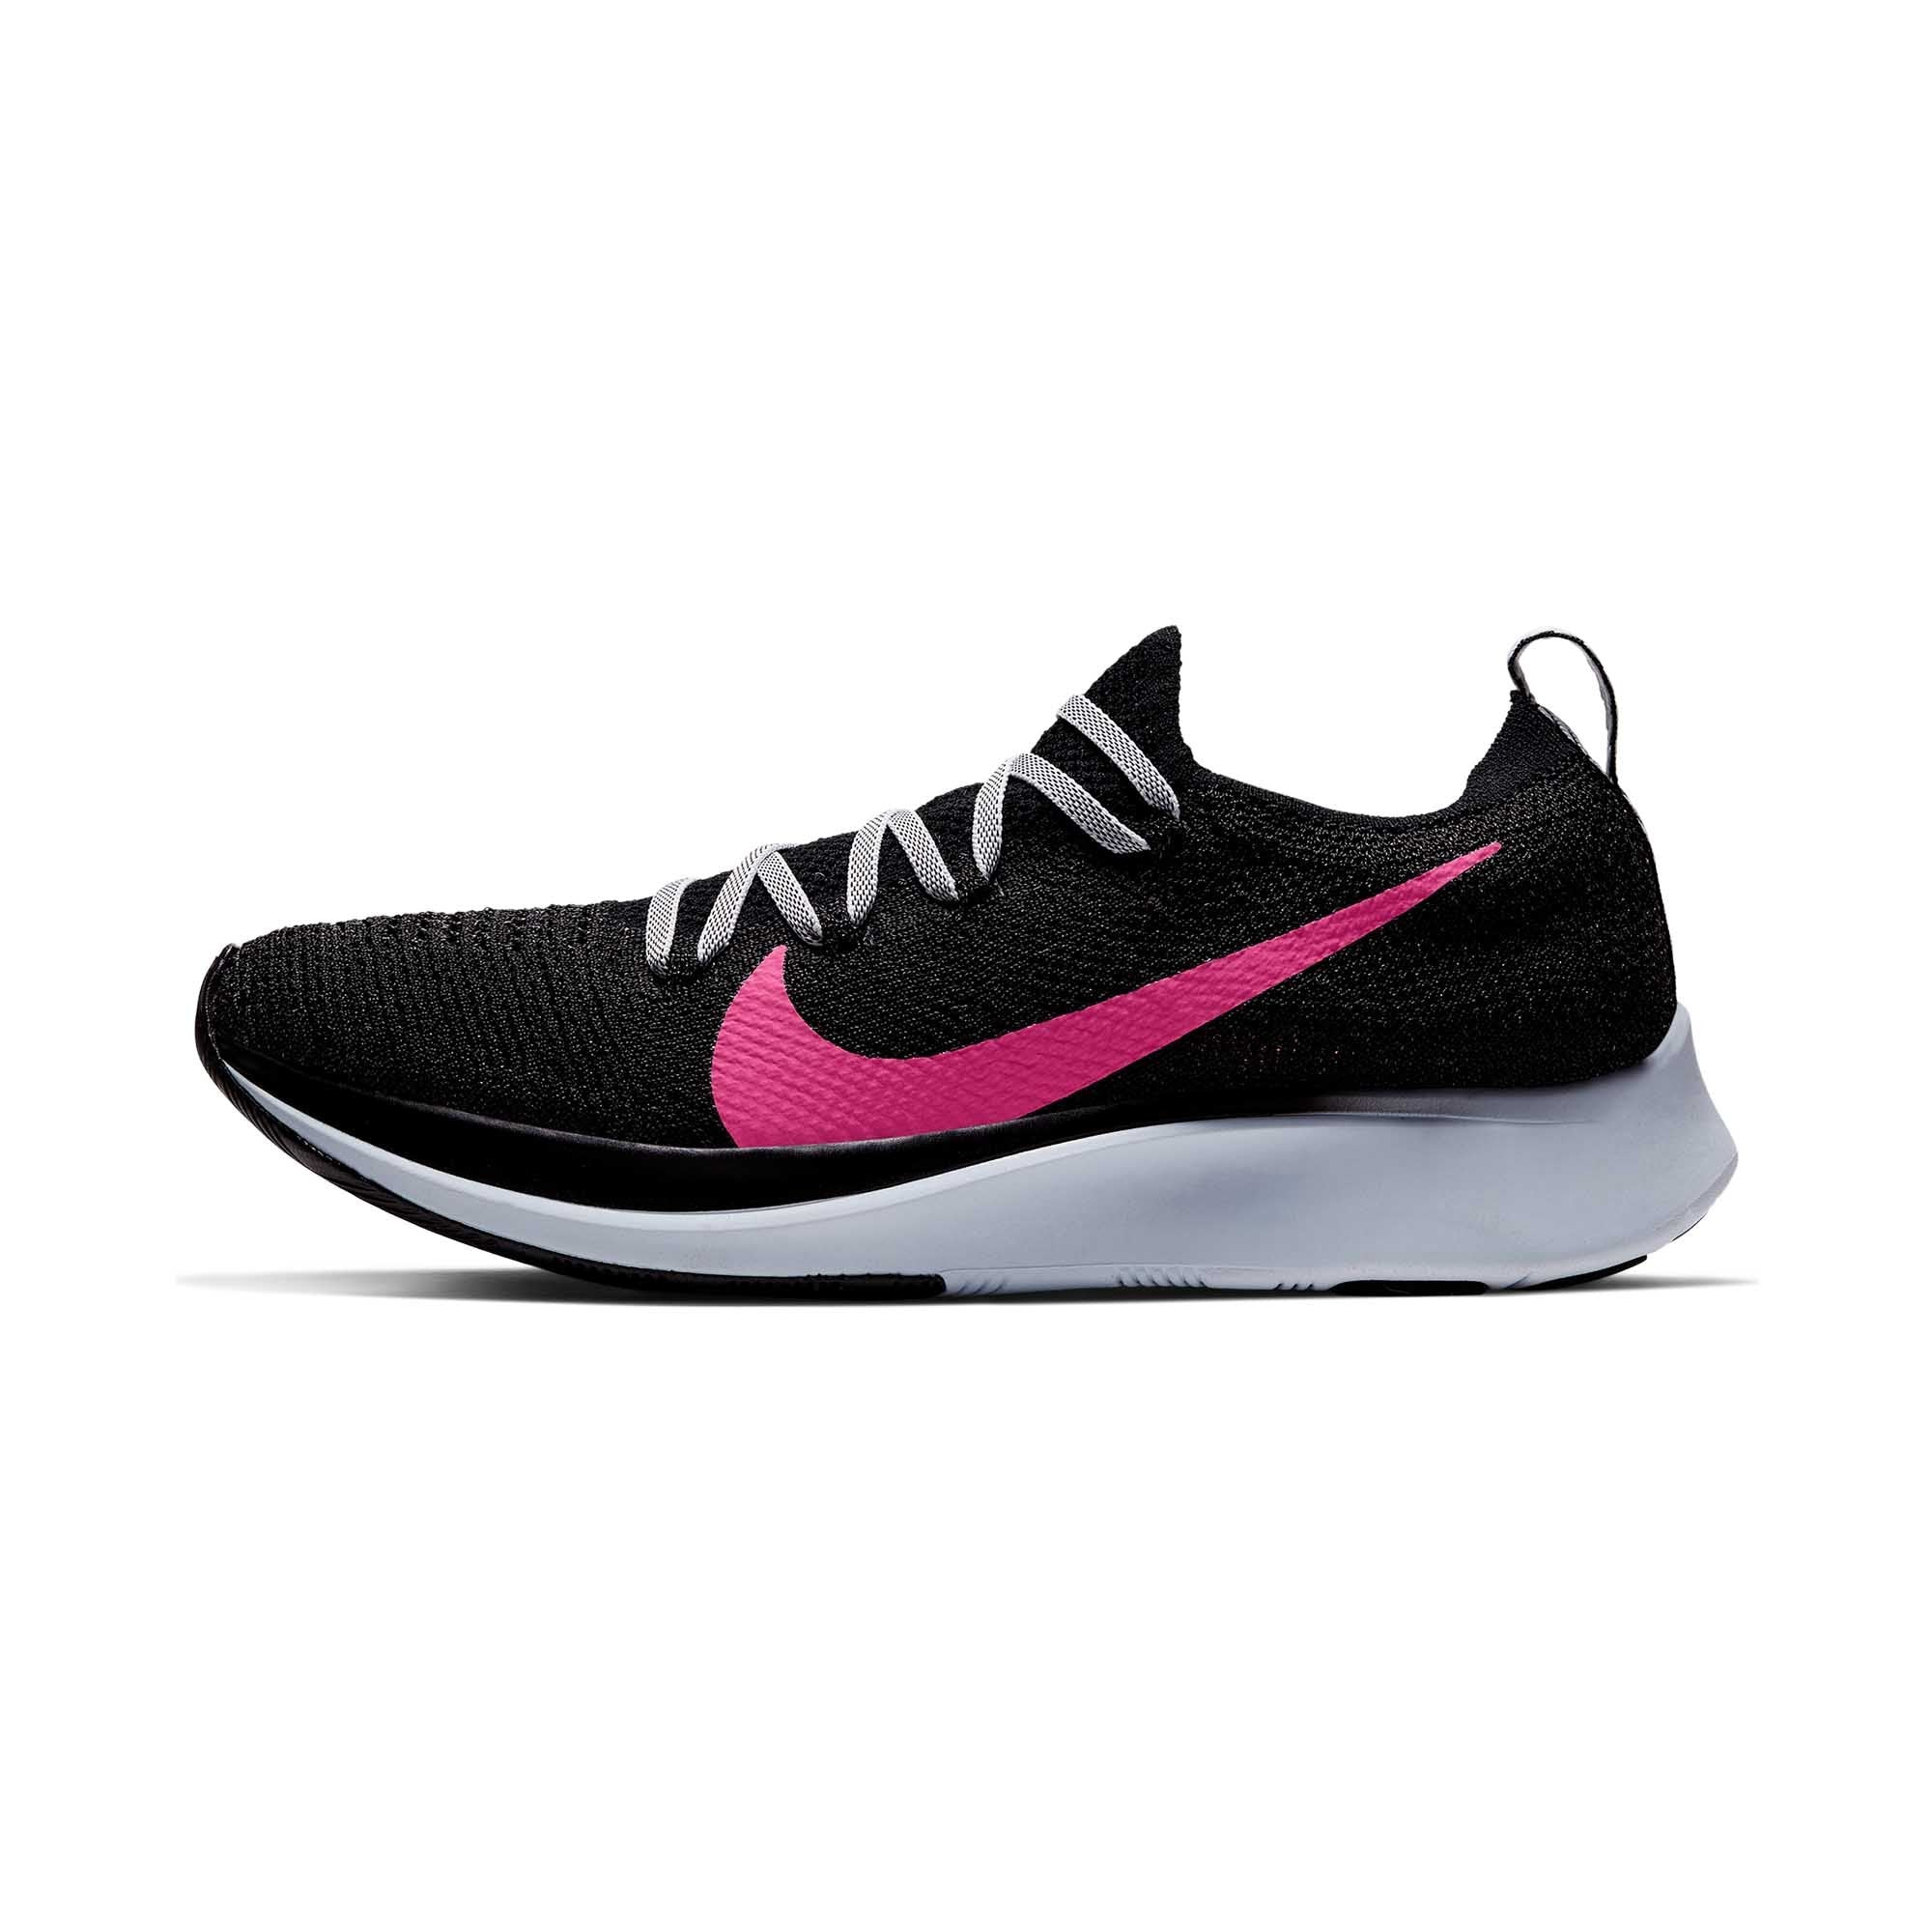 2eab3728ee1 Buy Nike Women Zoom Fly Flyknit Running Shoes Online in Singapore ...